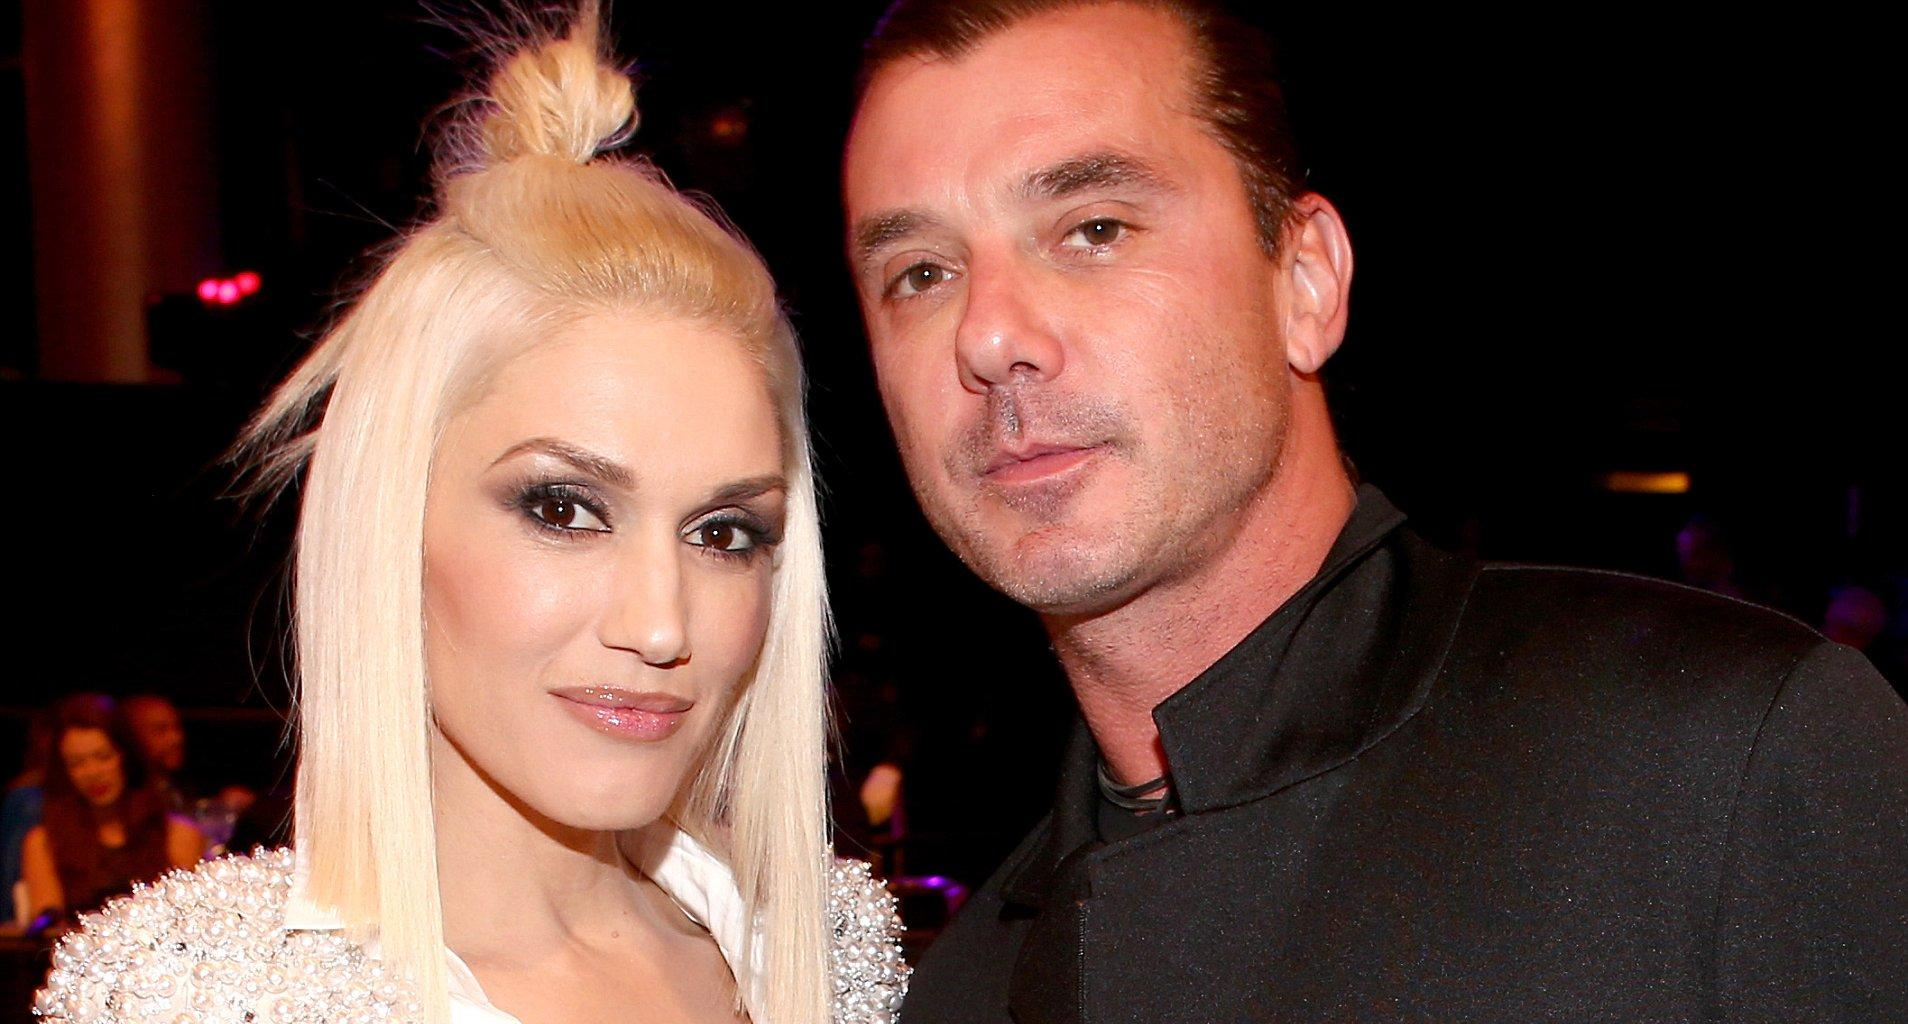 Wendy Williams Slams Gavin Rossdale Over His Comments About His 'Tricky' Co-Parenting With Gwen Stefani Amid COVID-19